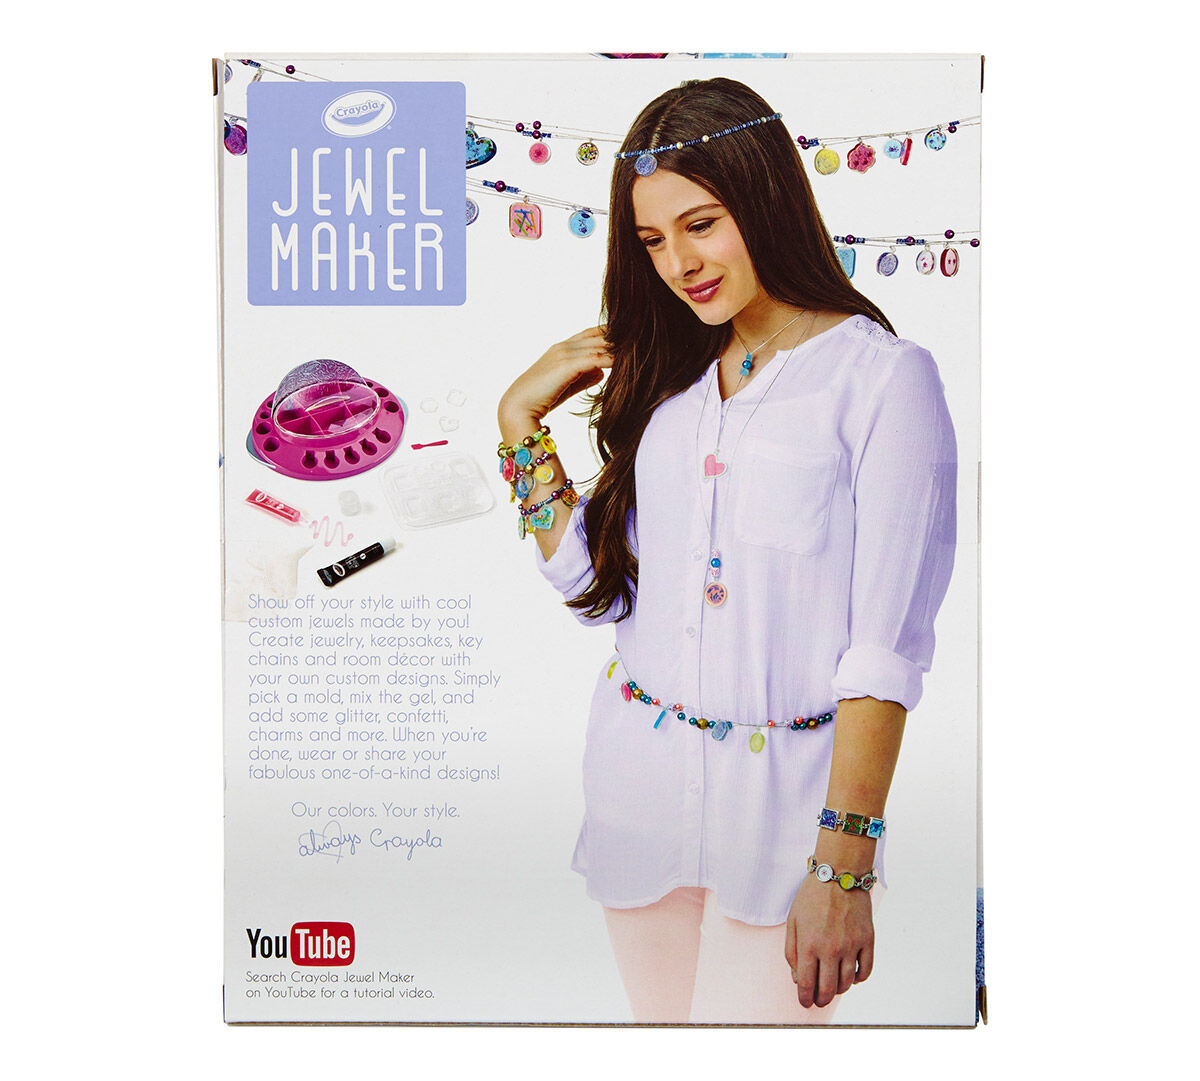 Jewel maker crayola Crayola fashion design studio reviews